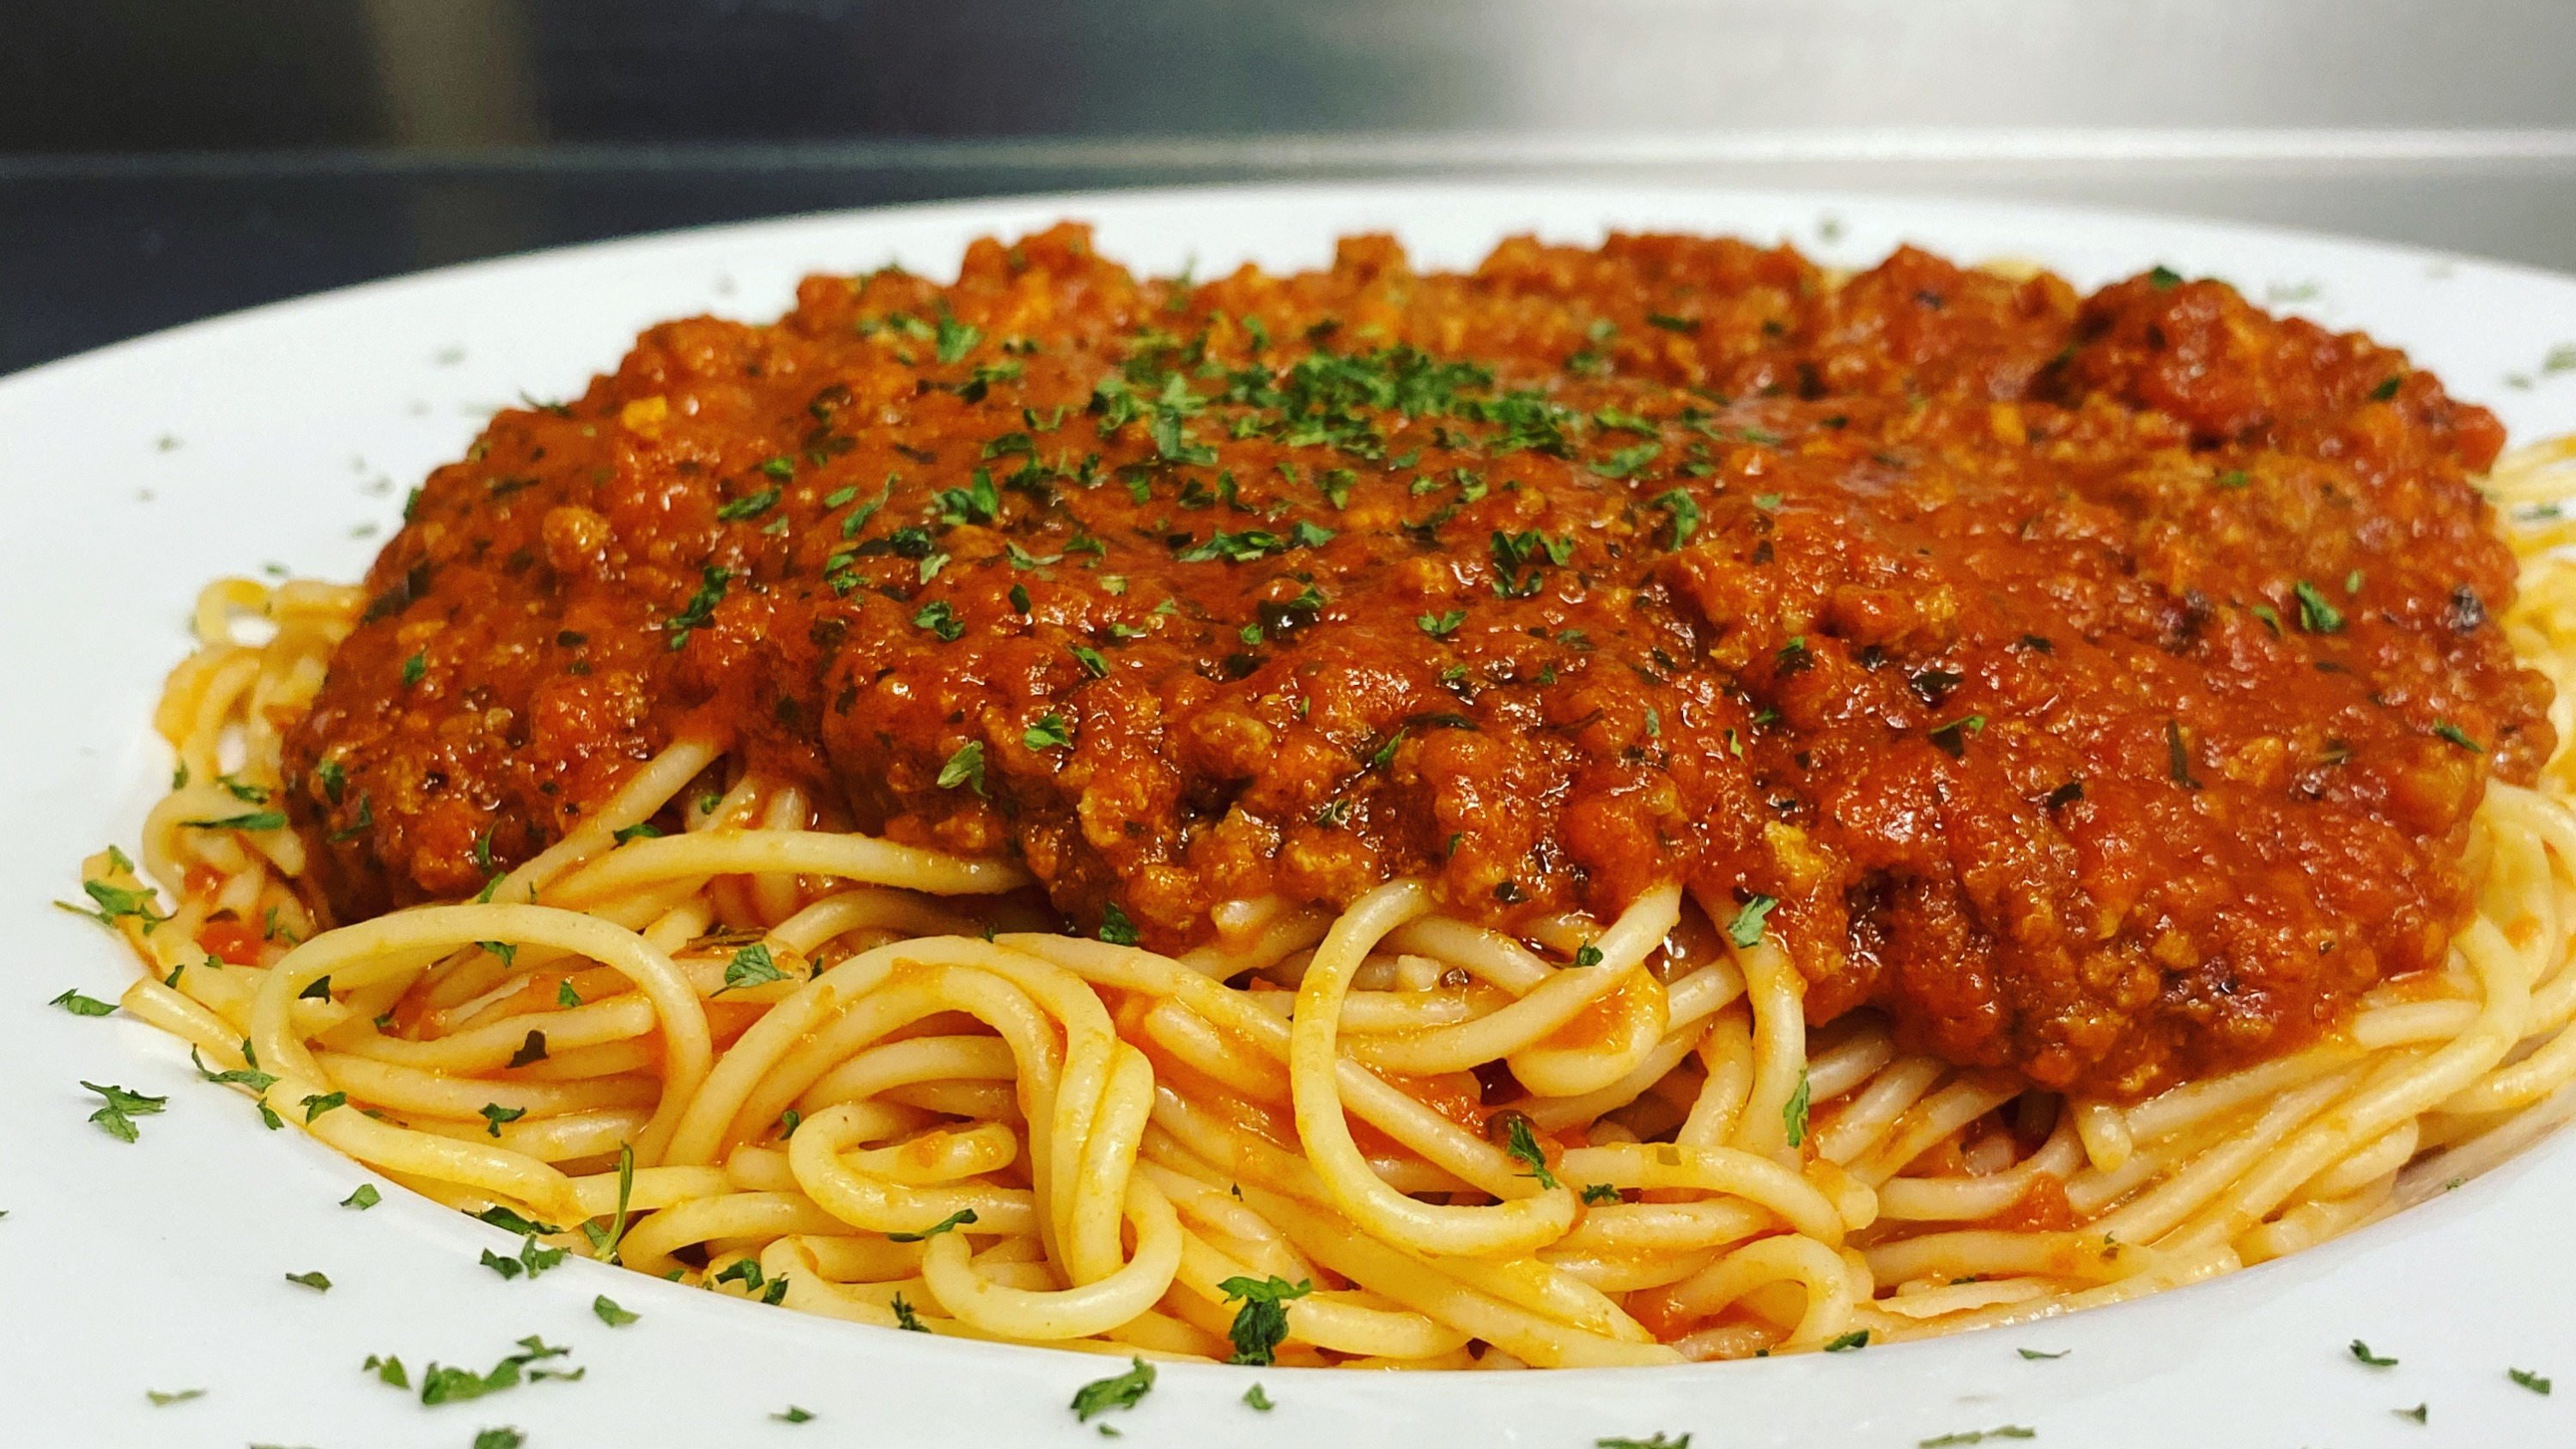 Spaghettini with meatsauce